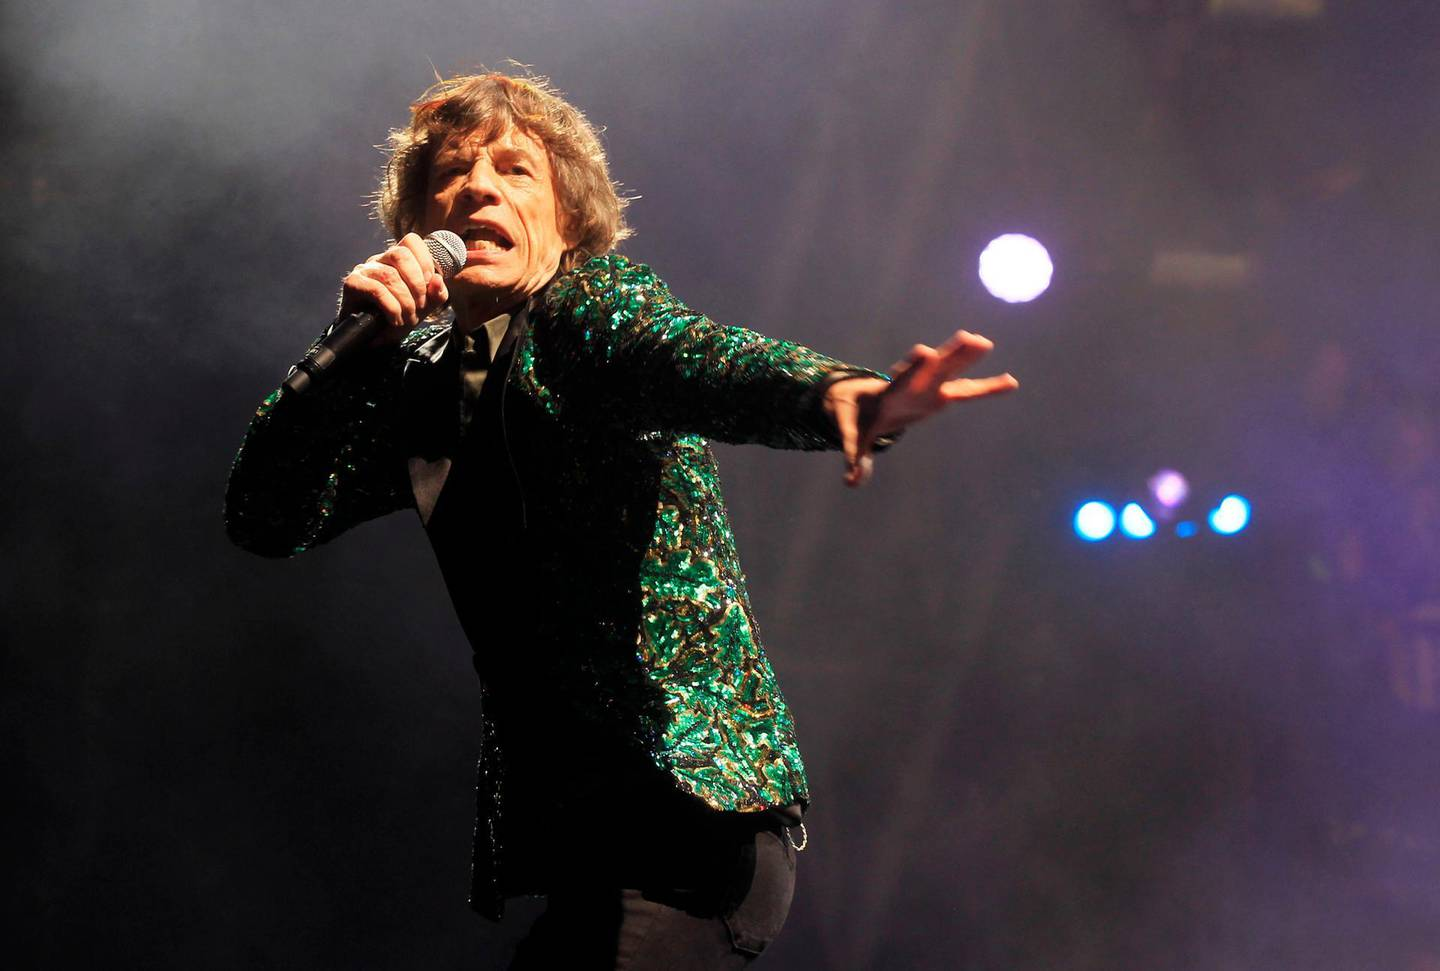 FILE - Mick Jagger of The Rolling Stones performs in Glastonbury, England on June 29, 2013. Jagger's jacket is among 55 L'Wren Scott creations going on sale this week at Christie's in London. (Photo by Jim Ross/Invision/AP, File)